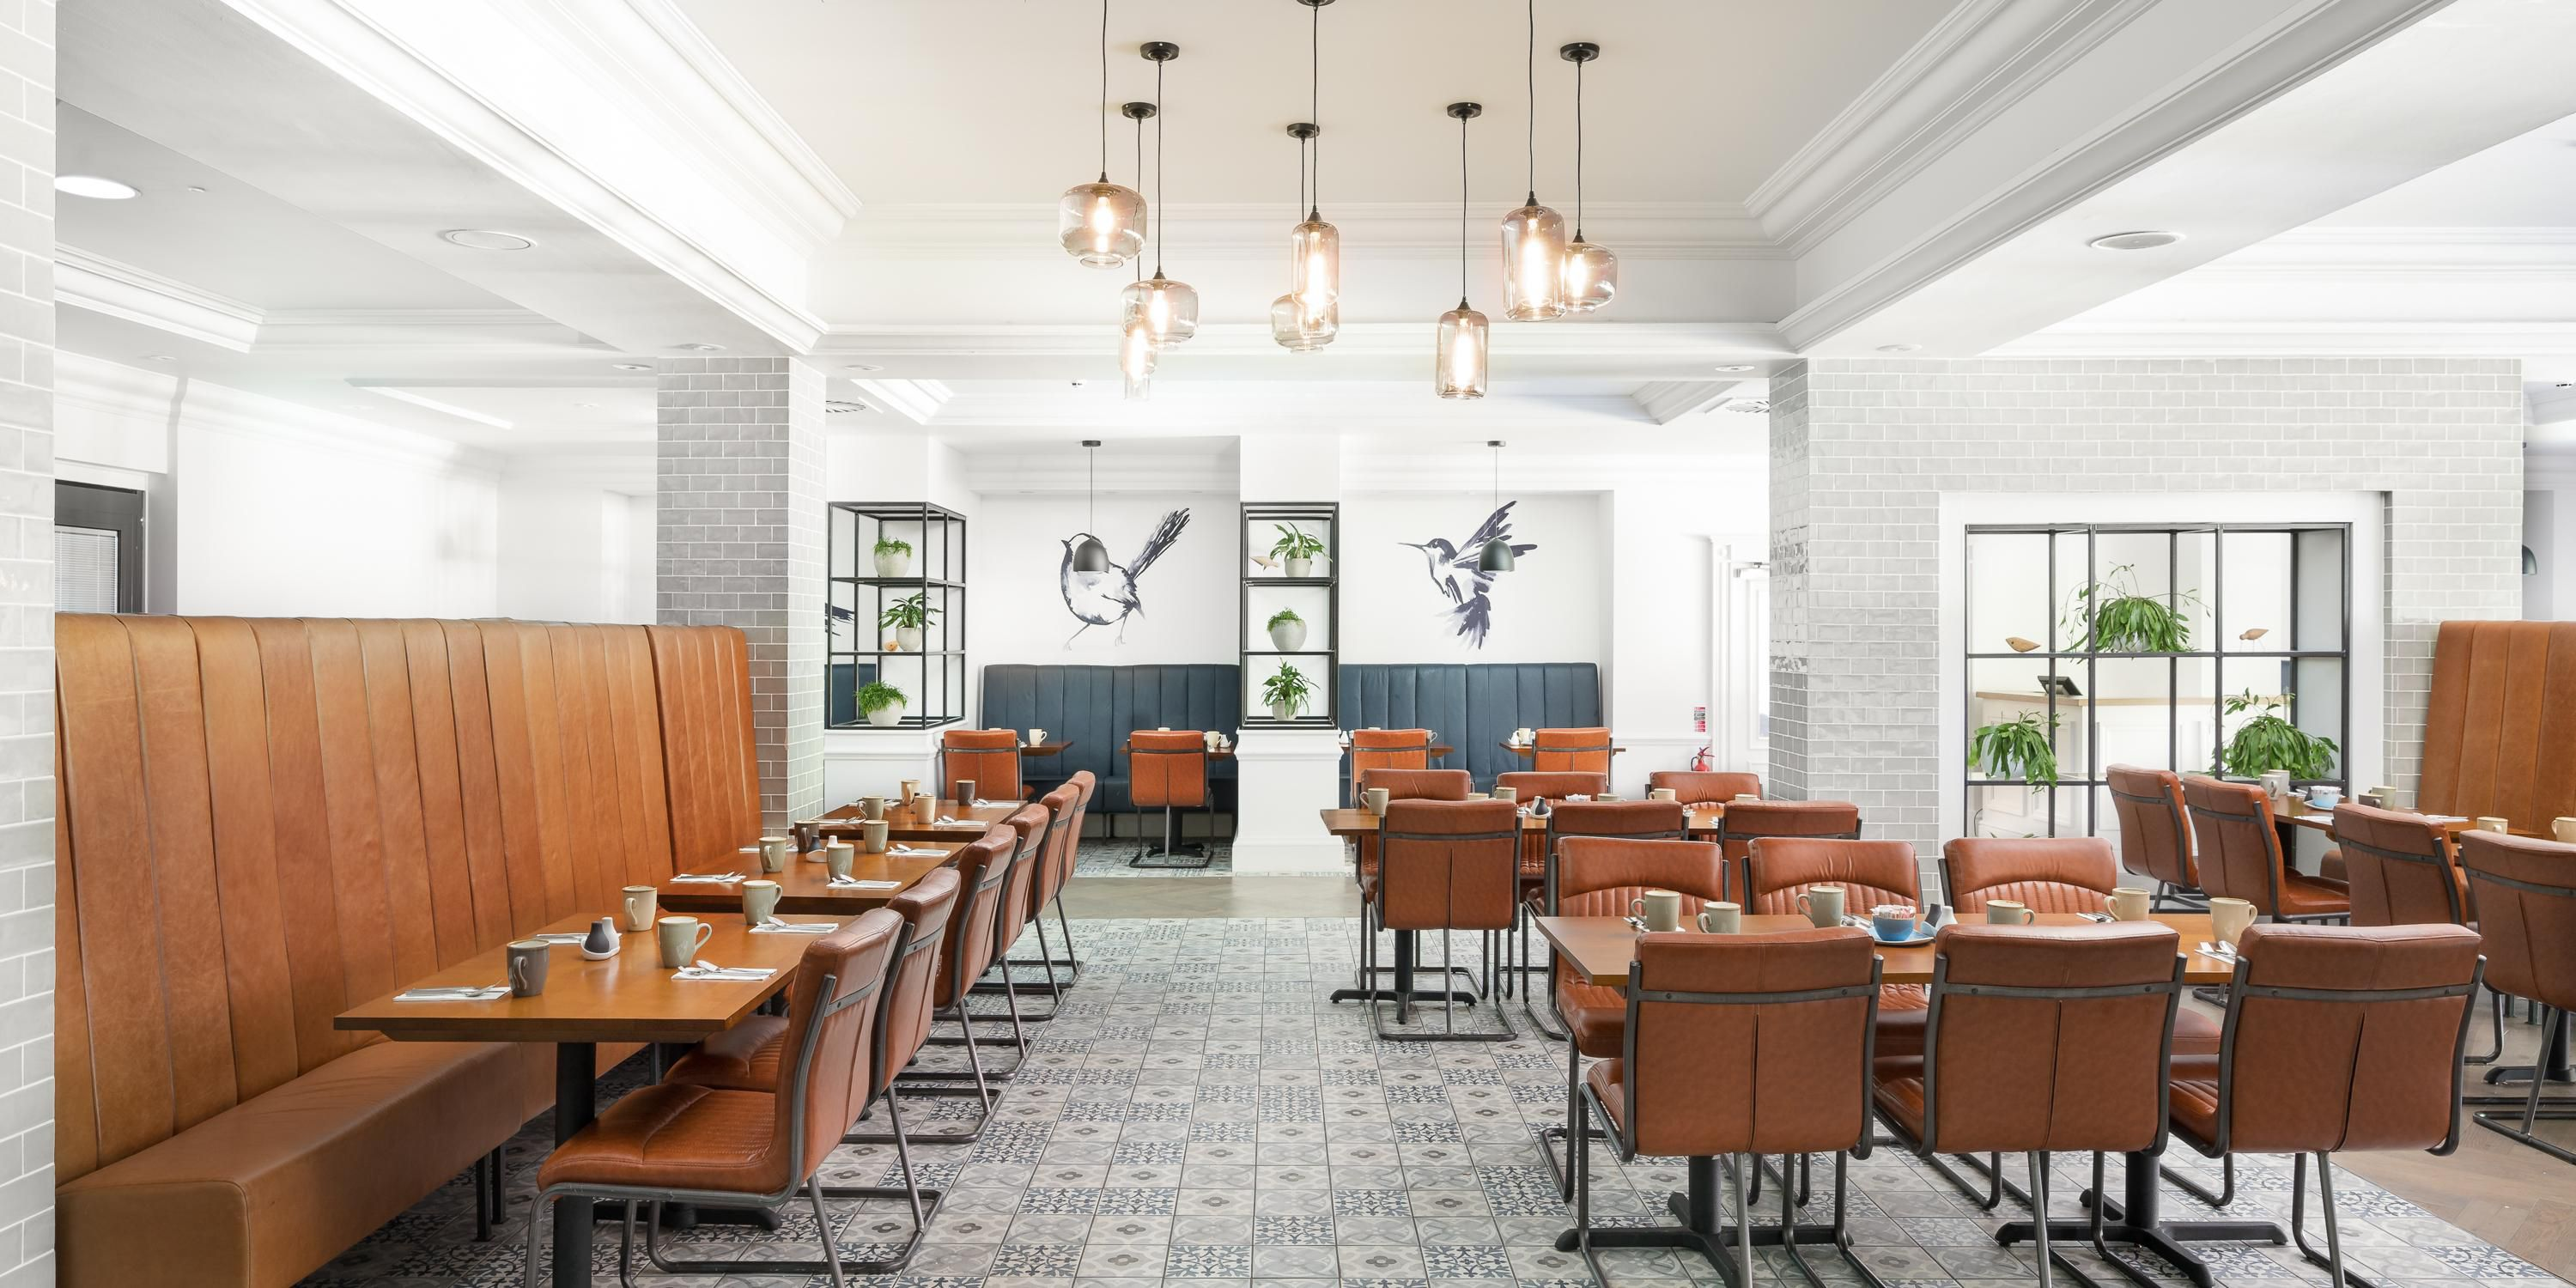 Dining Area in Brasserie six5one